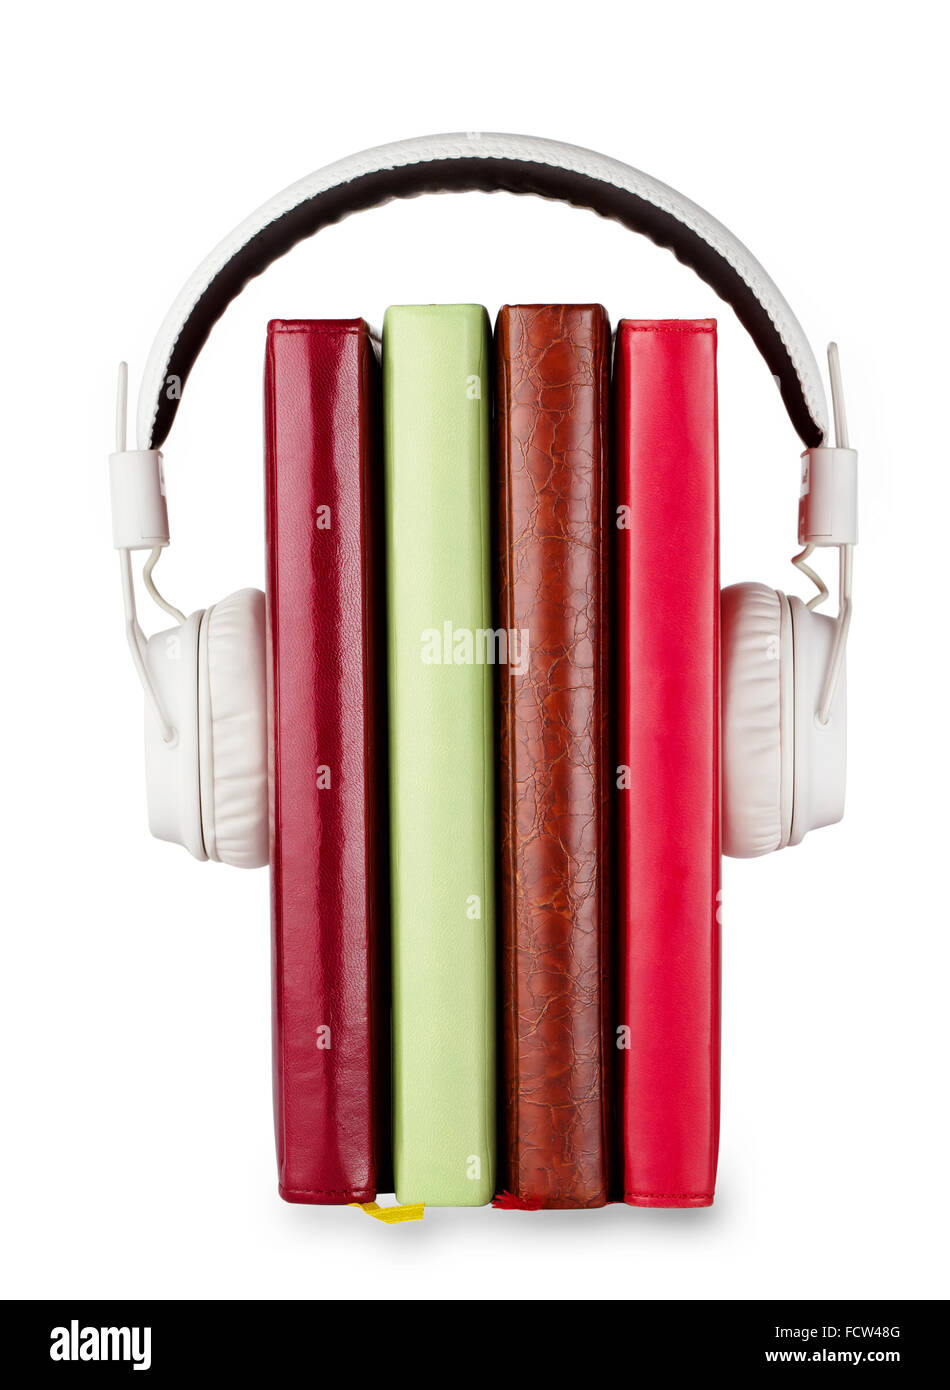 Concept of audio books on the subject with headphones and number of books - Stock Image